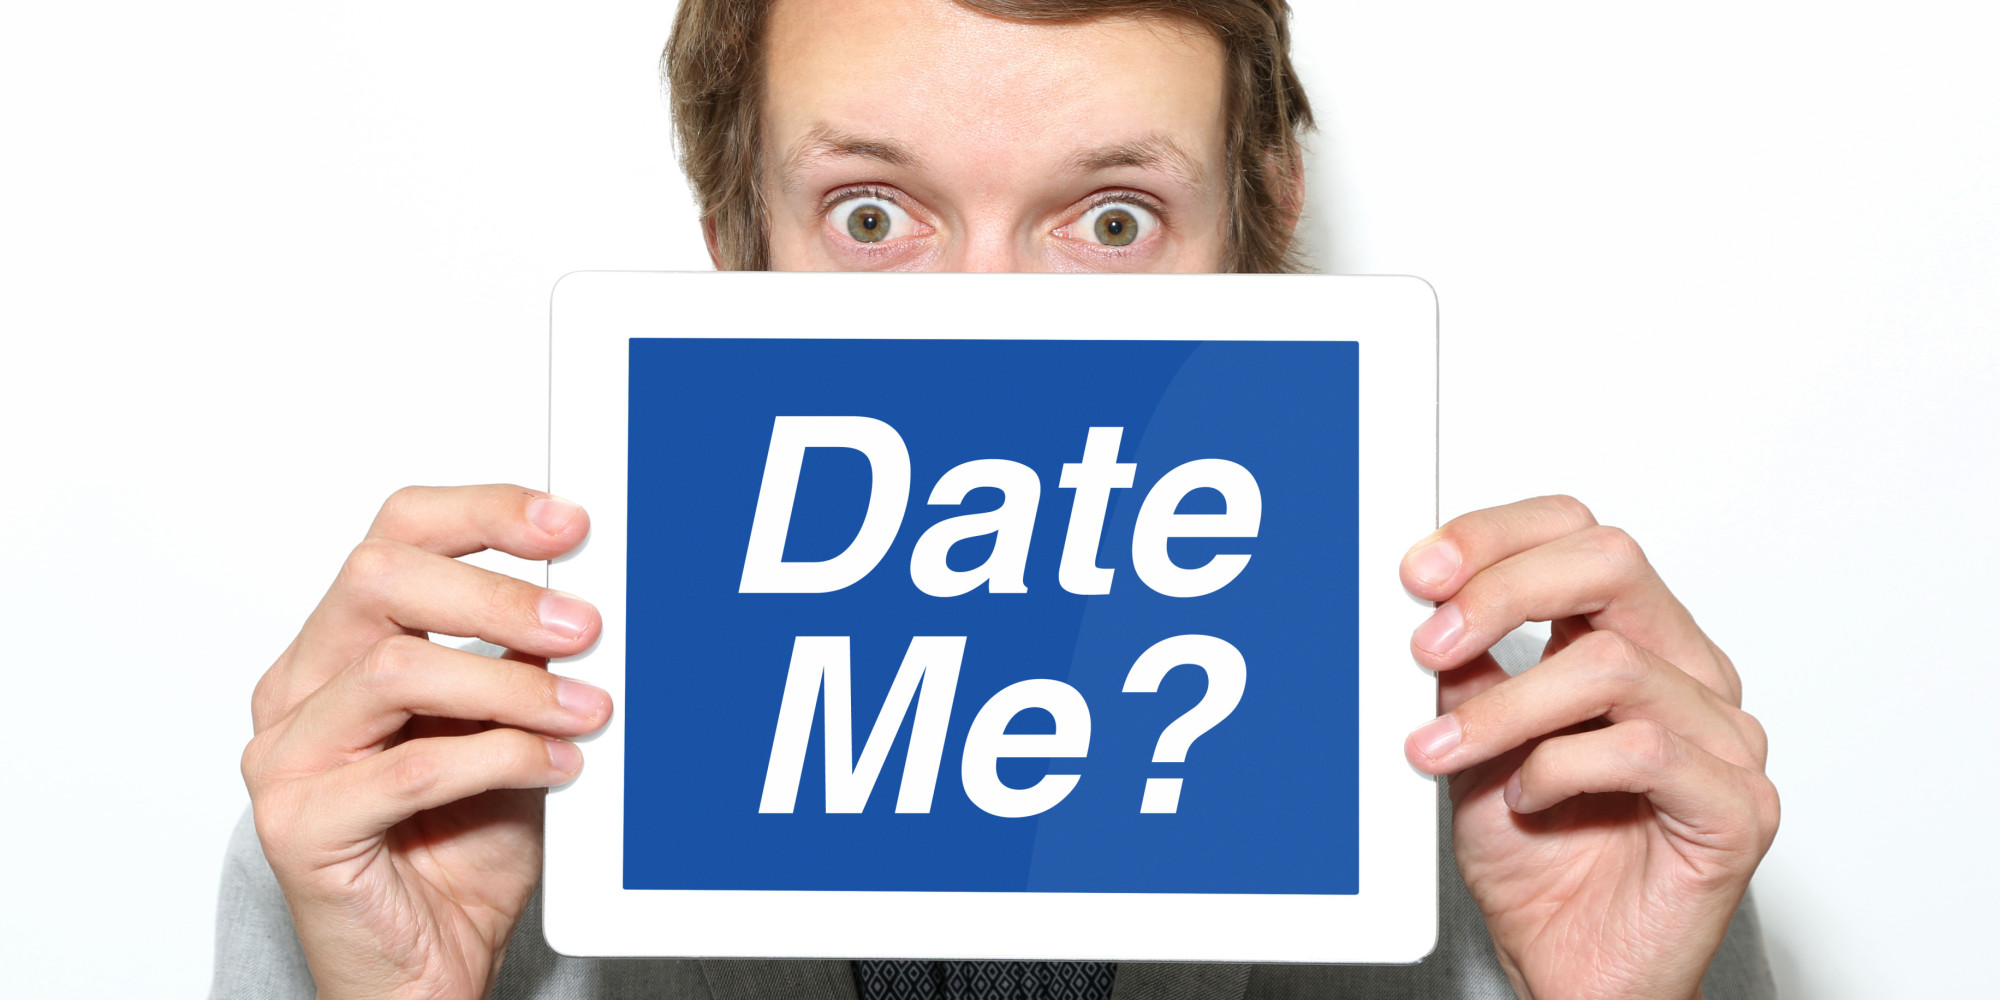 What types of guys are online dating